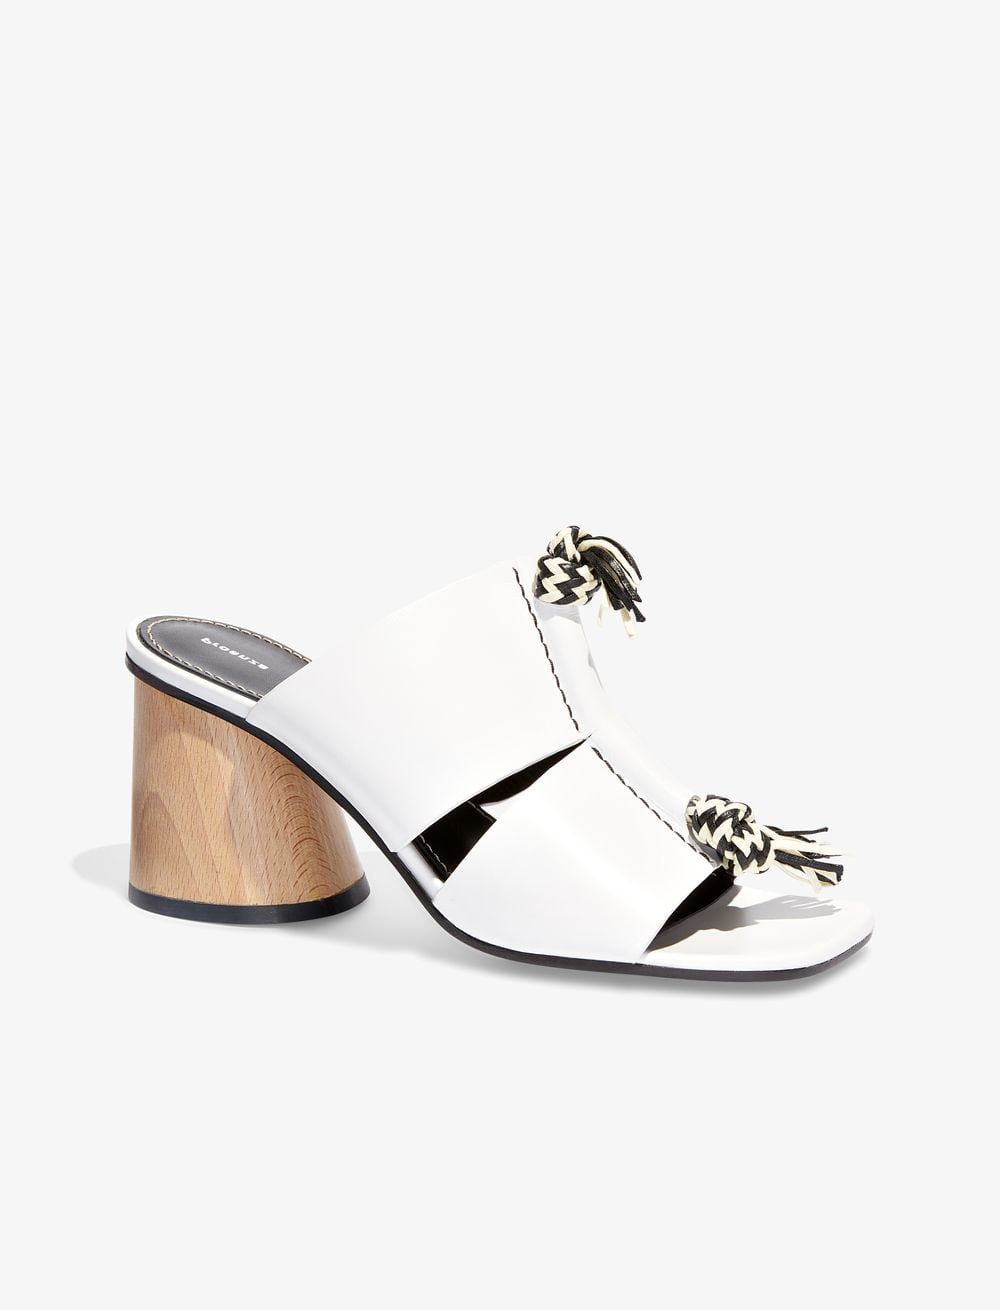 Proenza Schouler Knotted Rope Sandals Official Site Rope Sandals Sandals Proenza Schouler Shoes